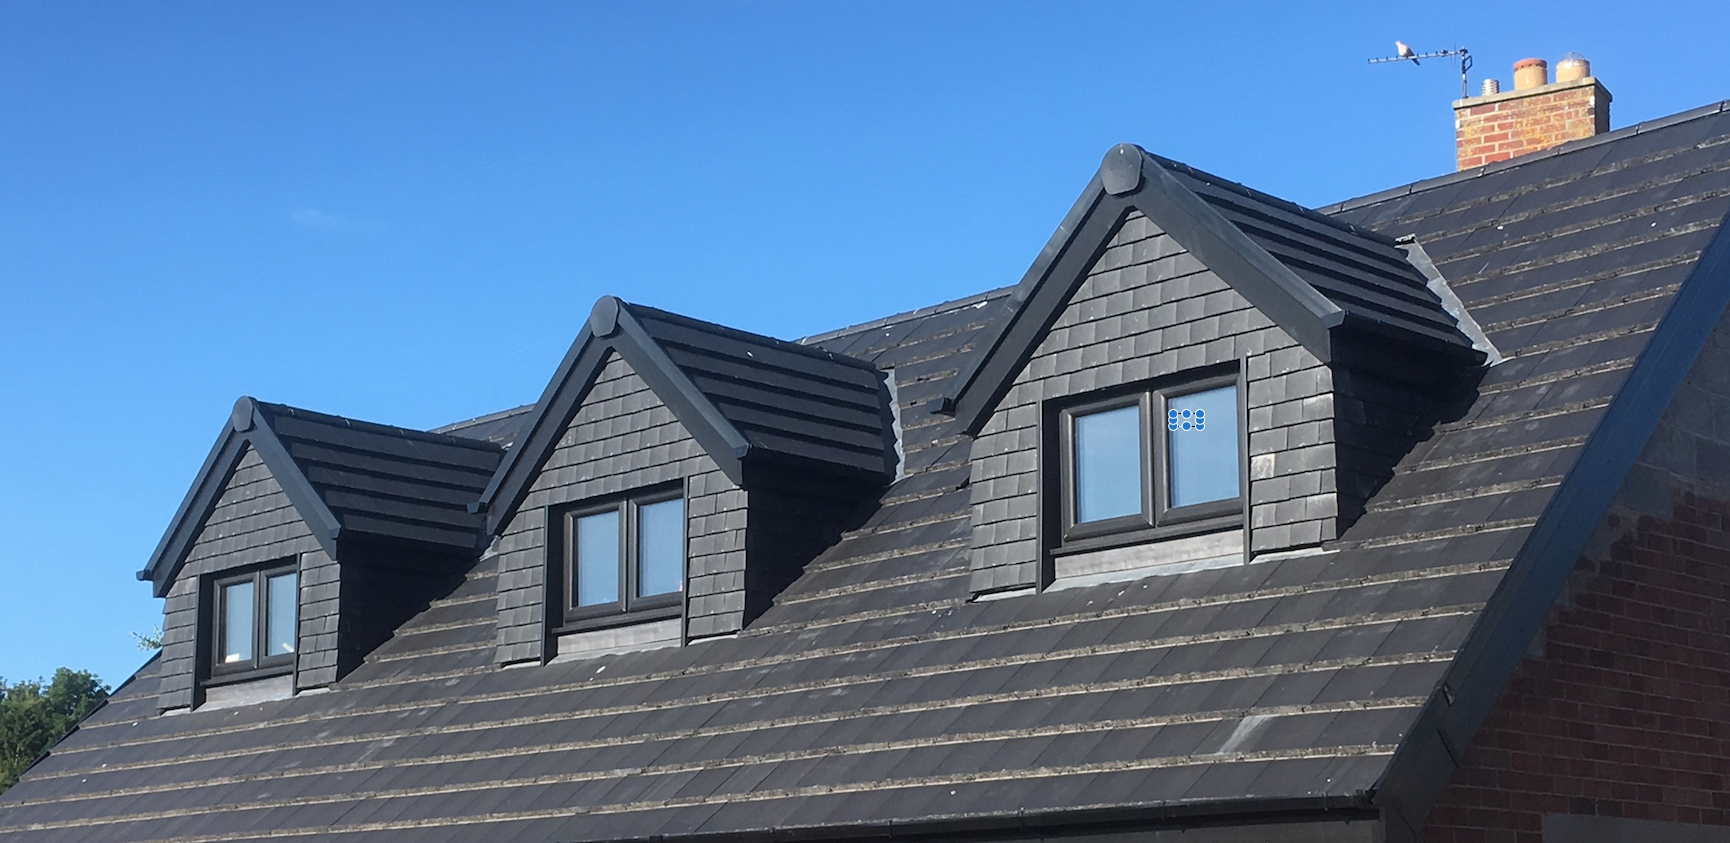 Cottage dormer loft conversion in Lancaster, creating a large bedroom with Velux windows